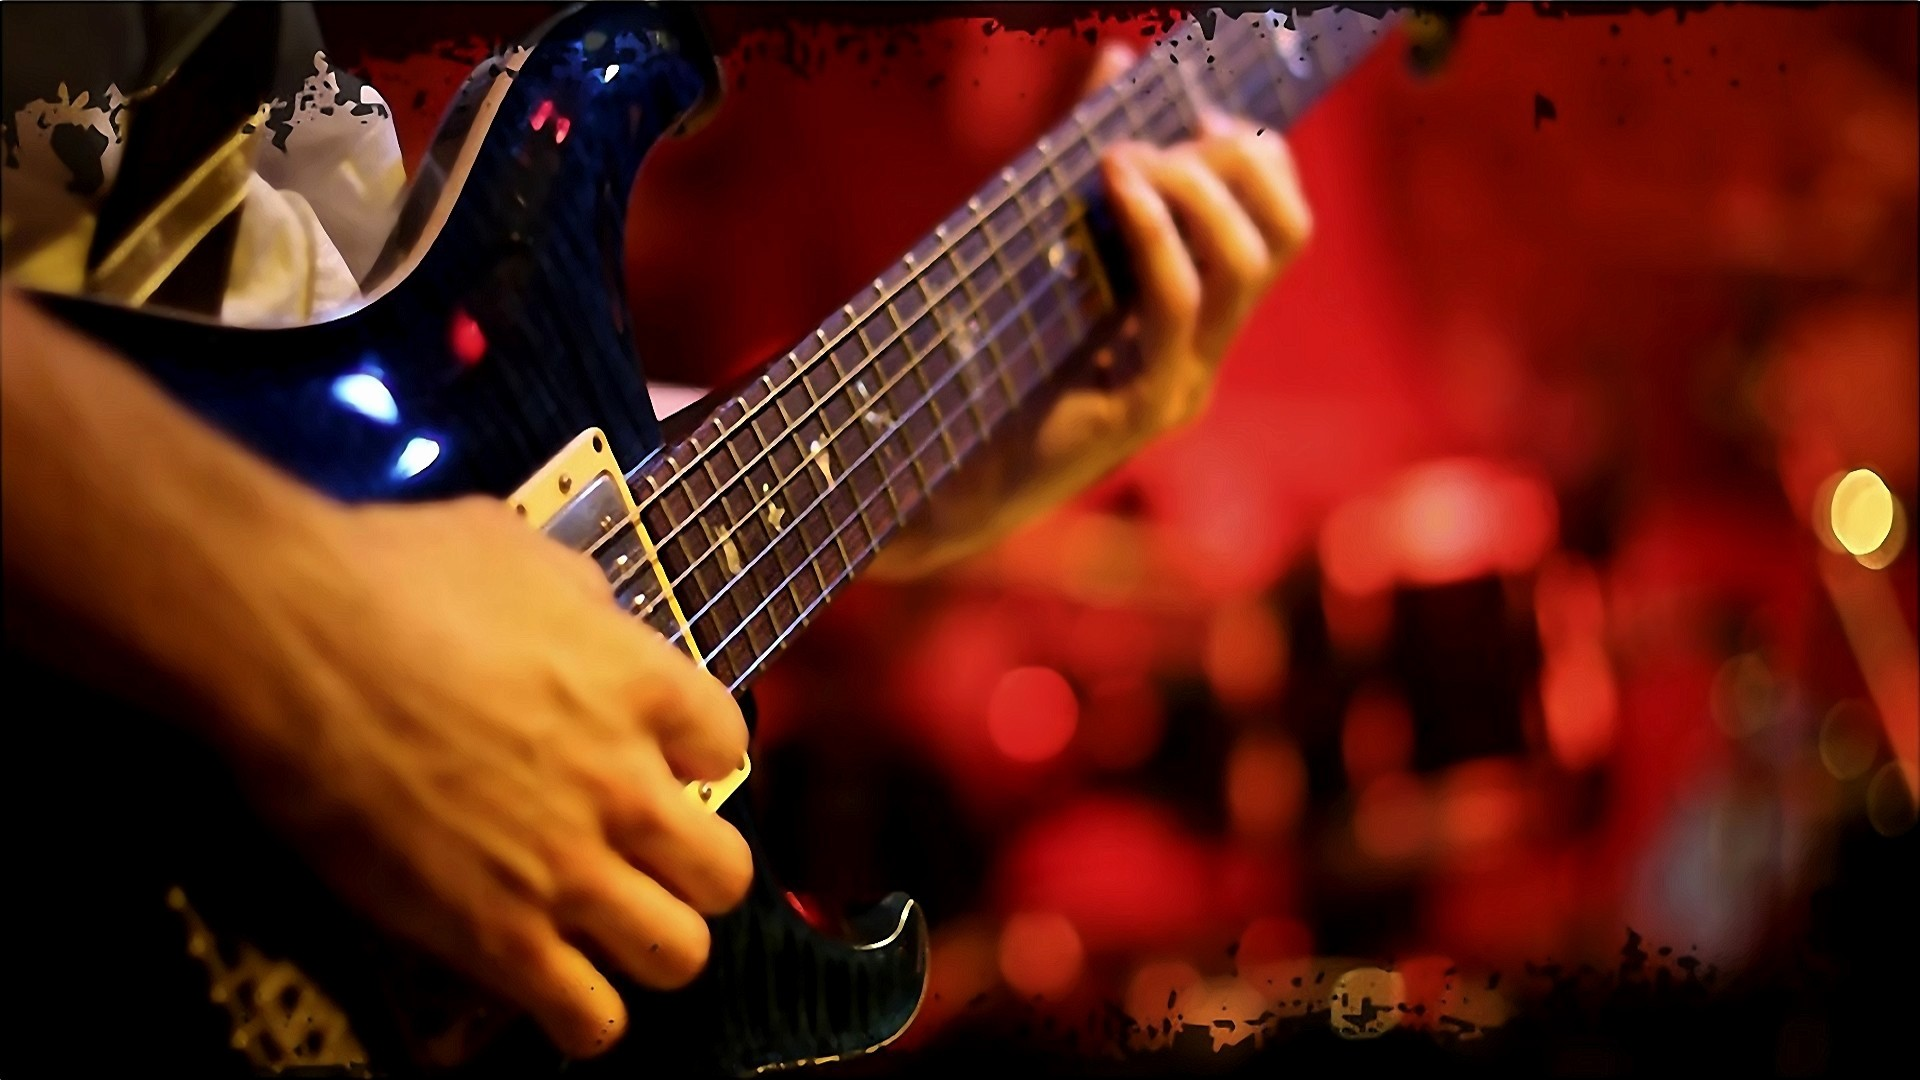 3d Musics Guitar Backgrounds: Awesome Guitar Wallpapers (57+ Images